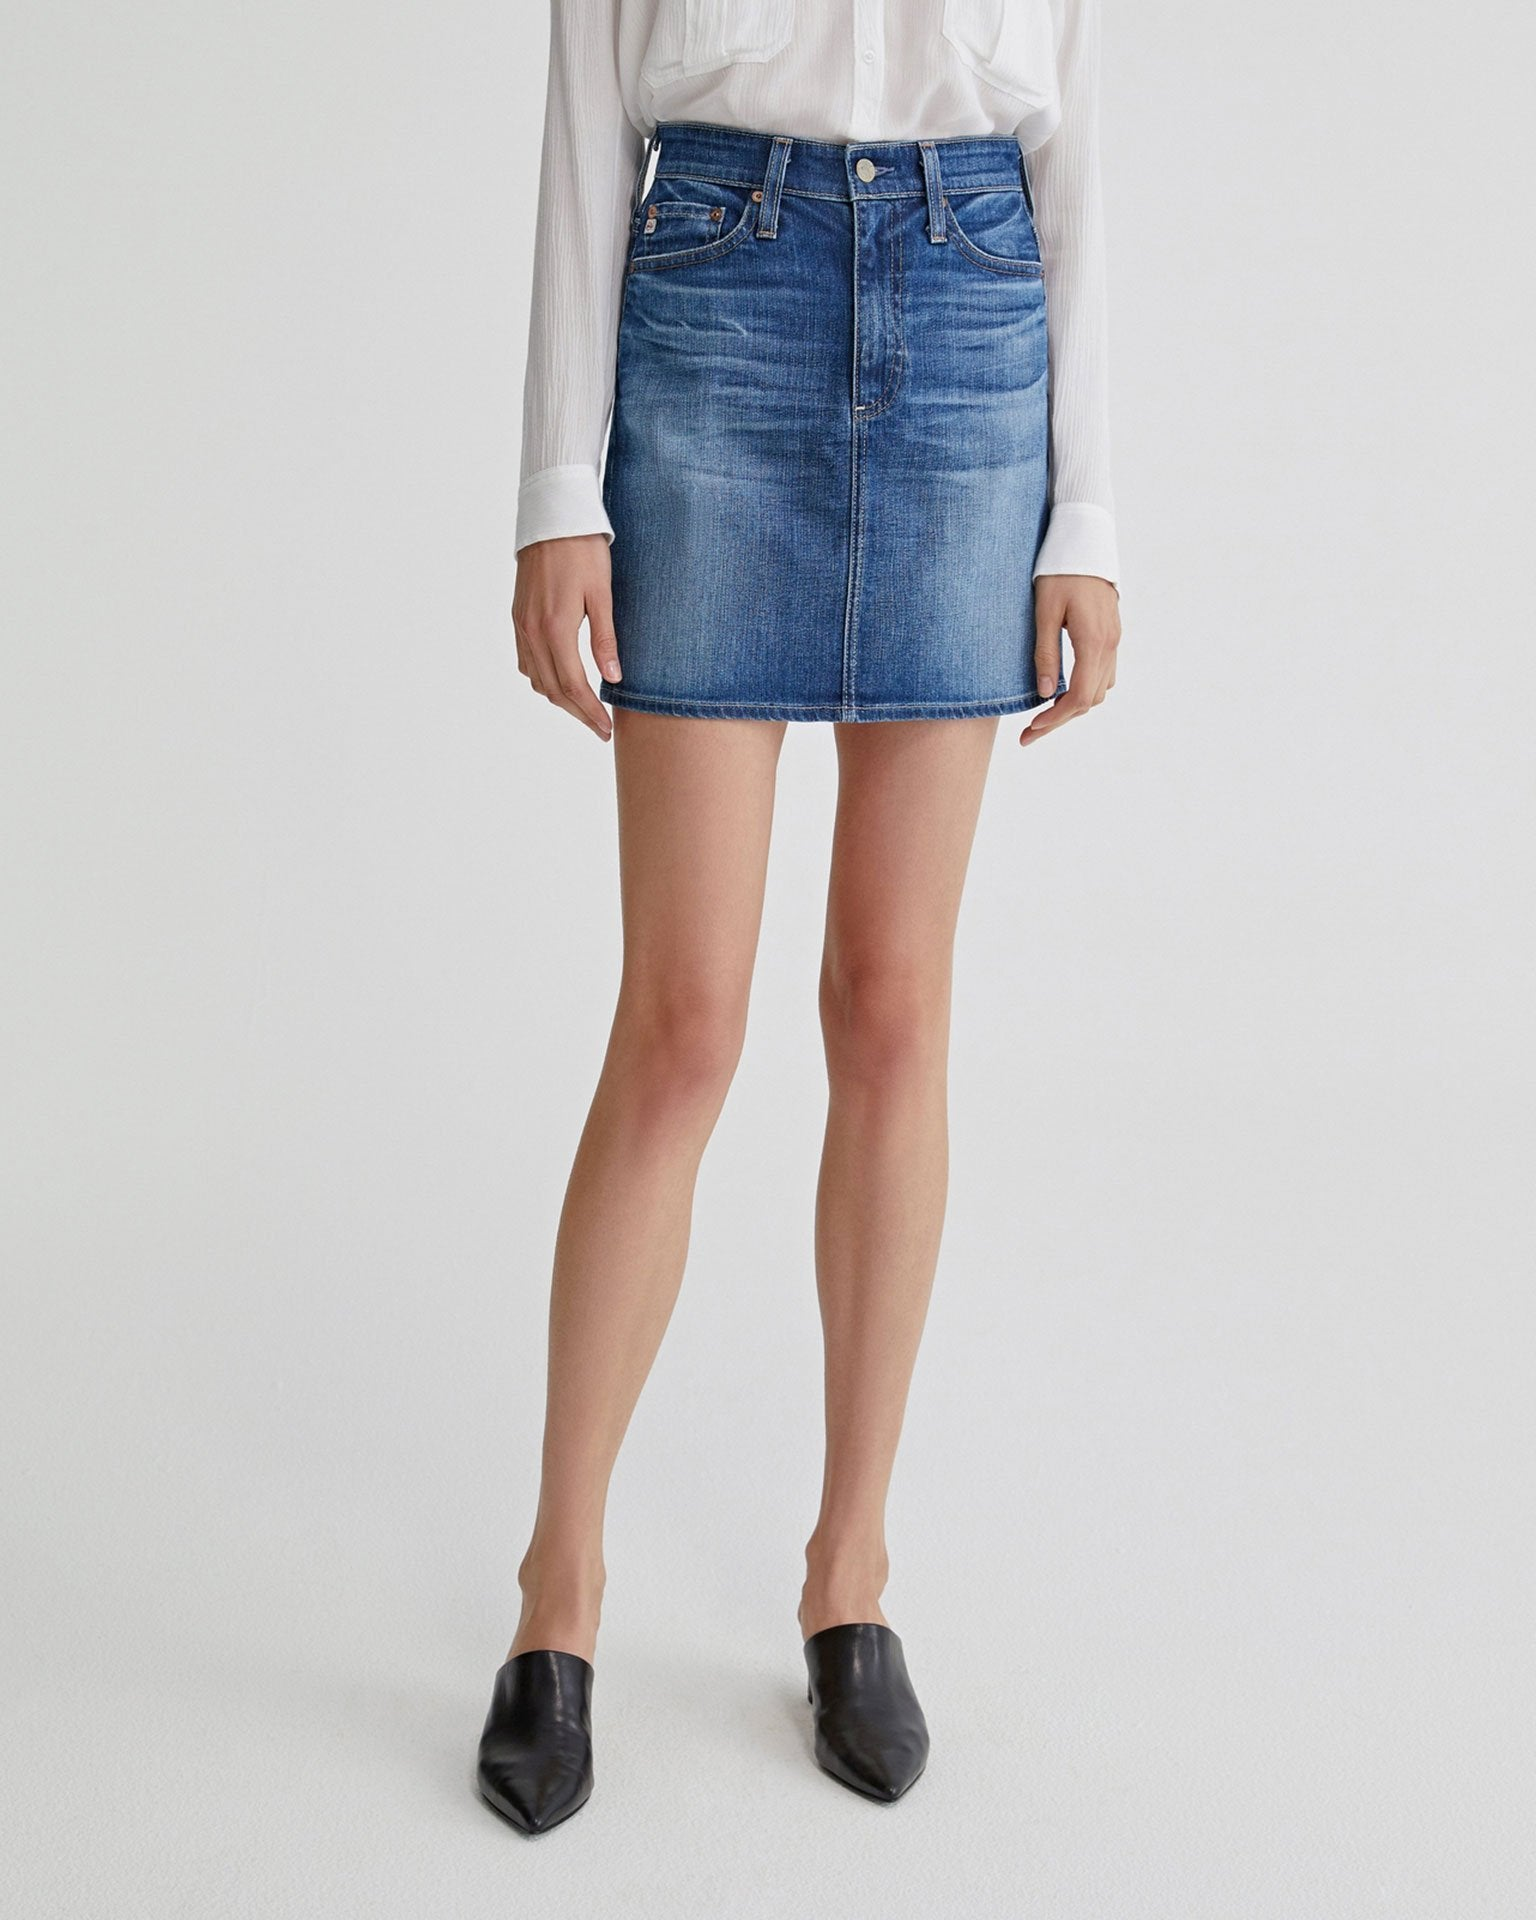 Adriano Goldschmied Denim 11Ys Fortitude / 24 The Vera Skirt in 11Ys Fortitude